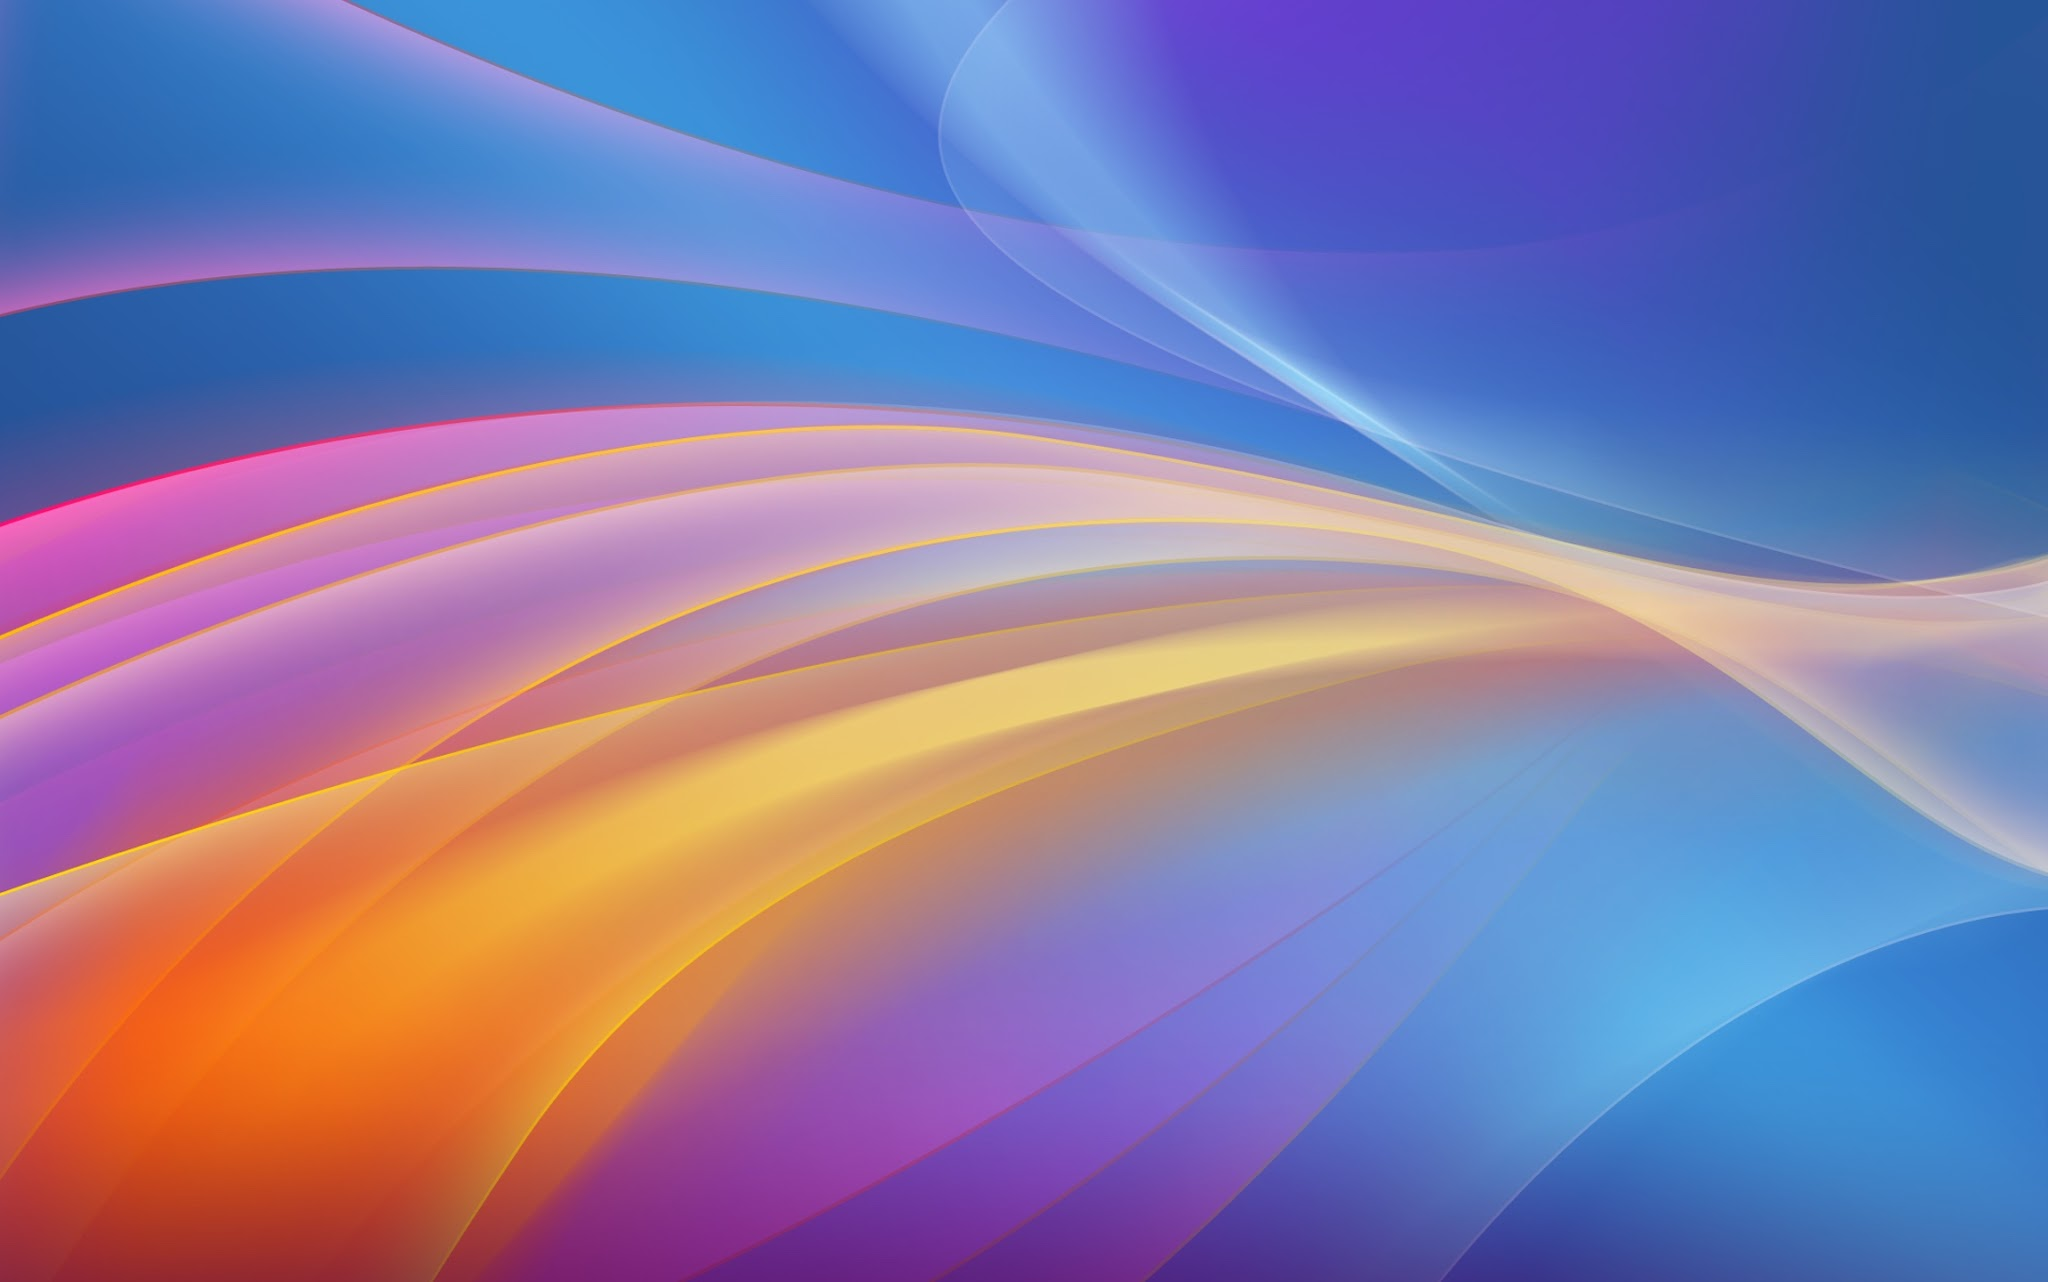 Wallpapers samsung galaxy tab s 10 5 pack 001 wallsphone - Fond d ecran cheminee pour tv ...